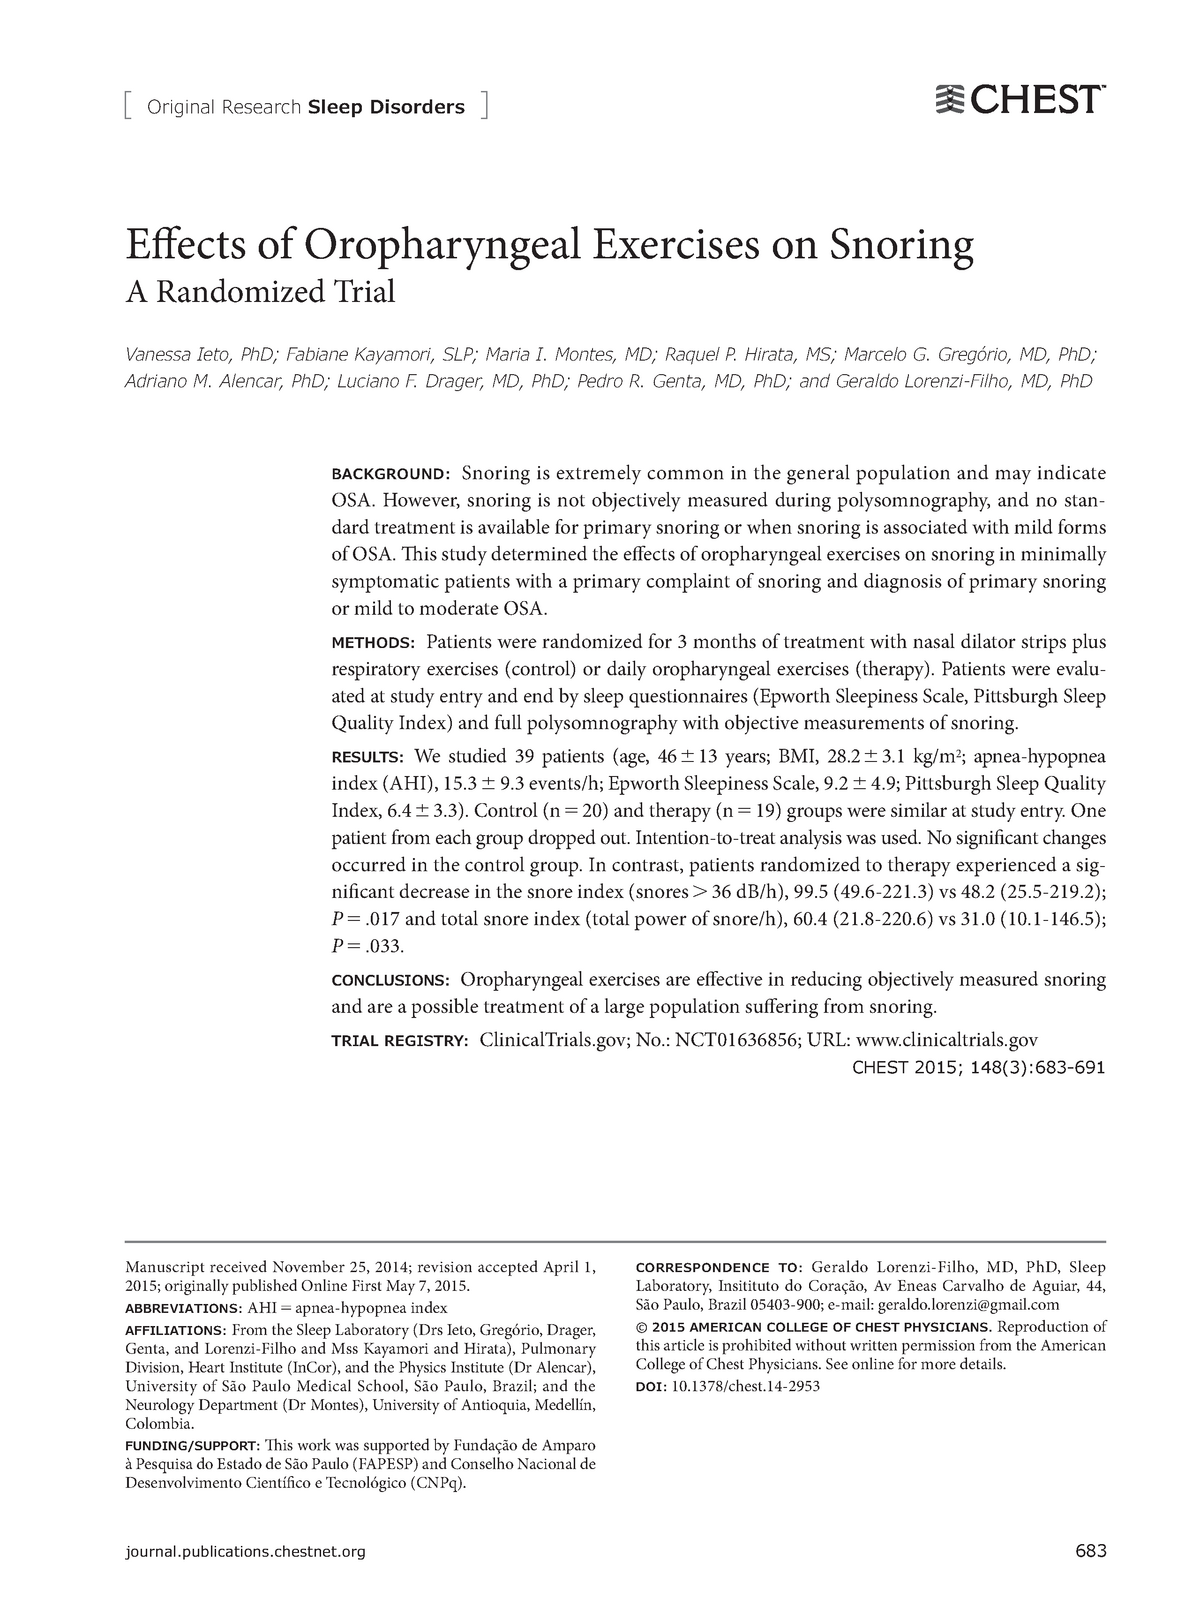 Eff ects of Oropharyngeal Exercises on Snoring - 202007